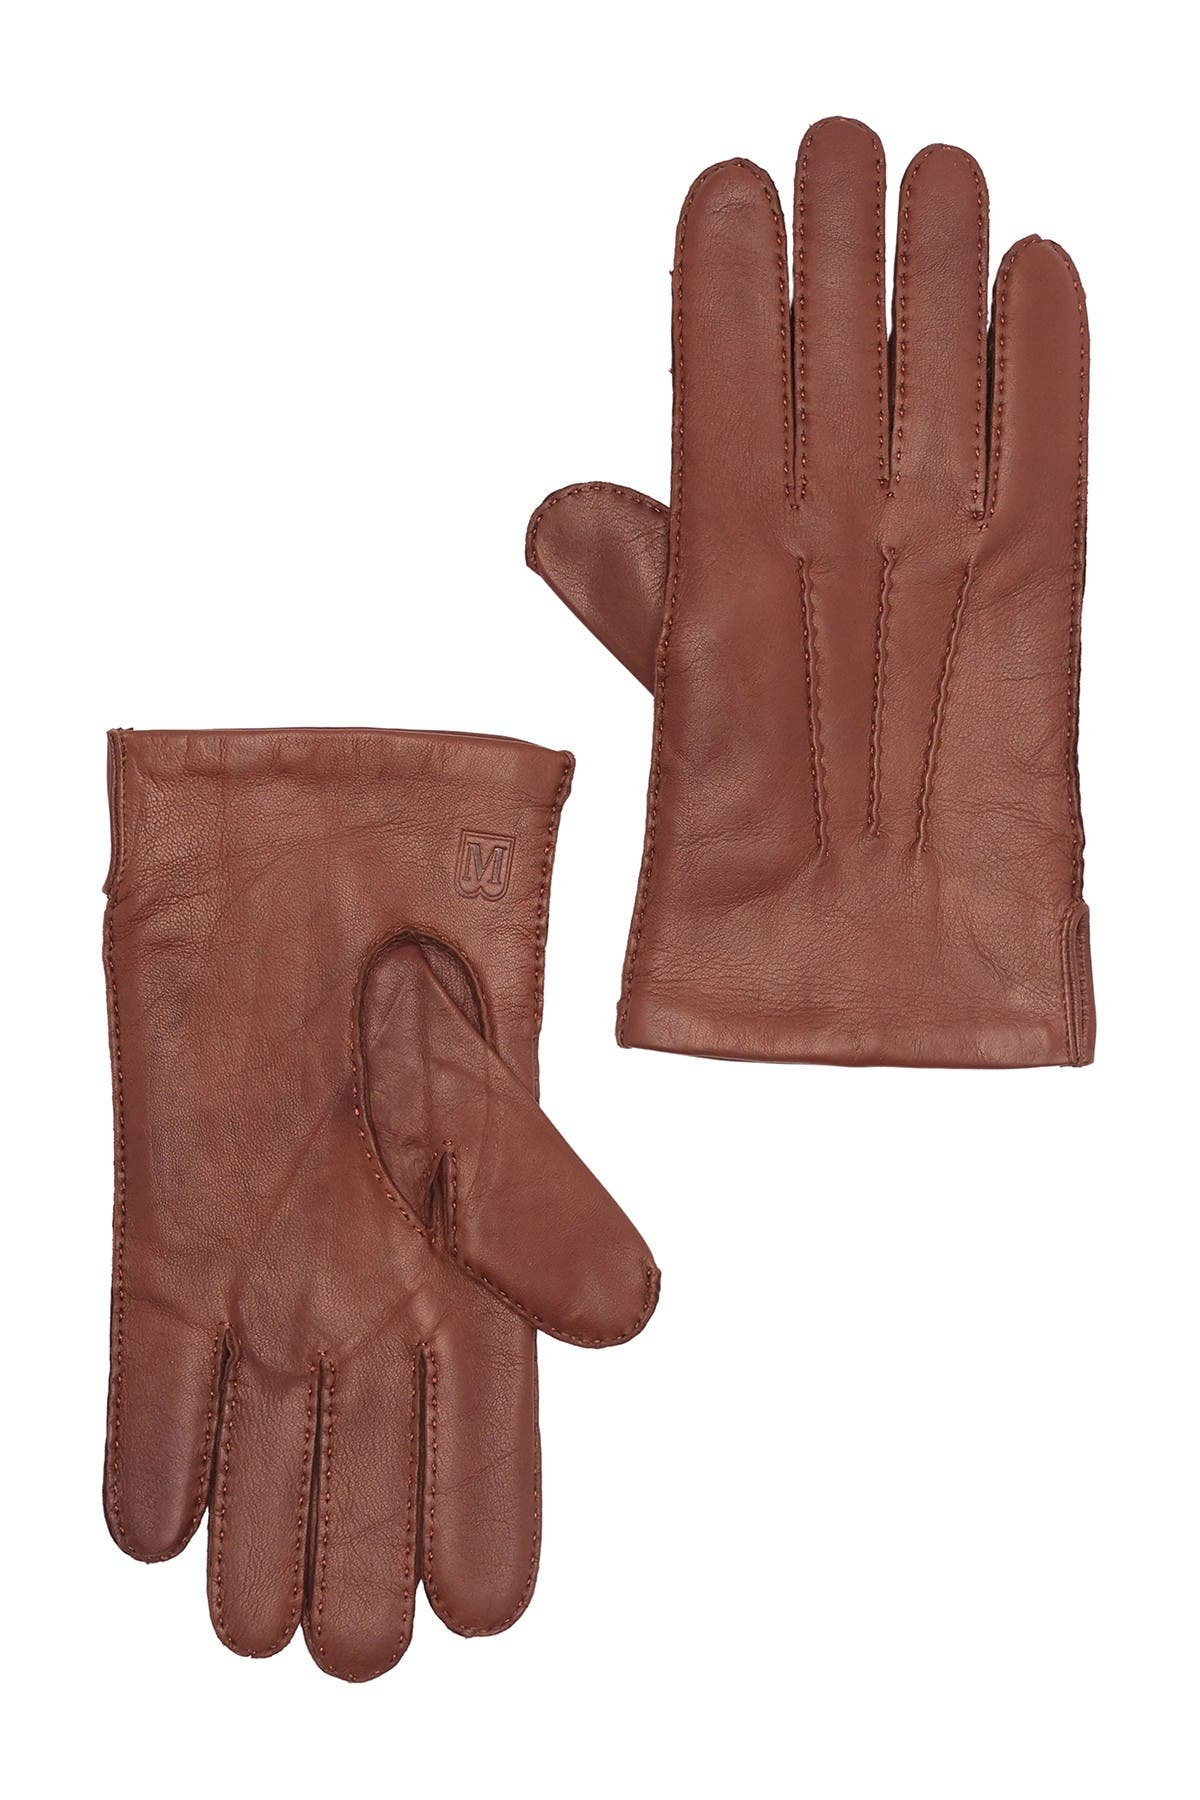 Image of Bruno Magli Cashmere Lined Hand Stitch Leather Gloves